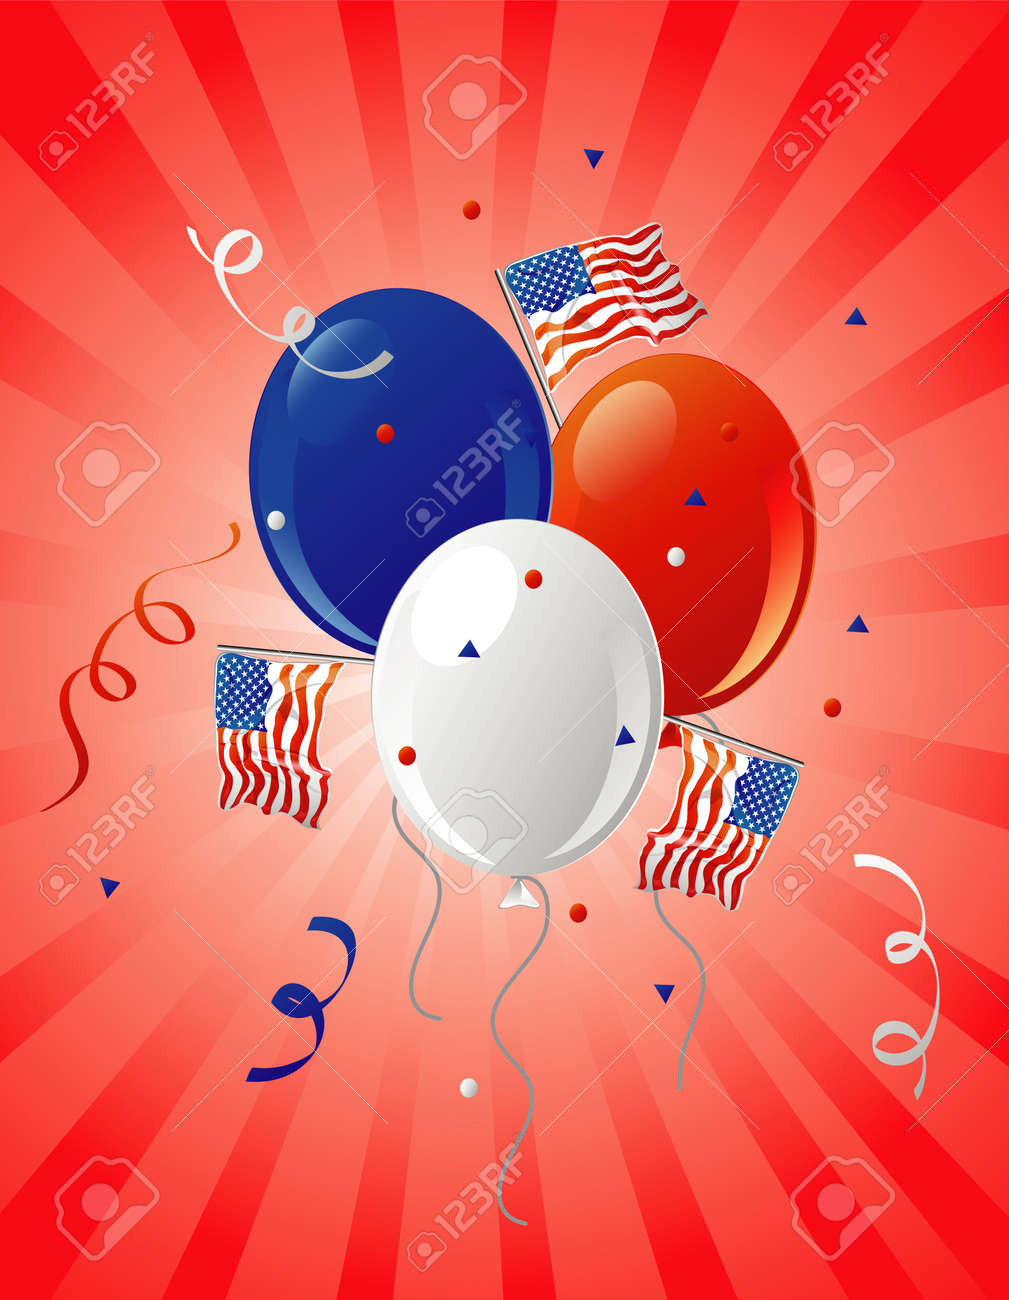 Illustration of patriotic party balloons and flags on a retro background. Stock Illustration - 2886055